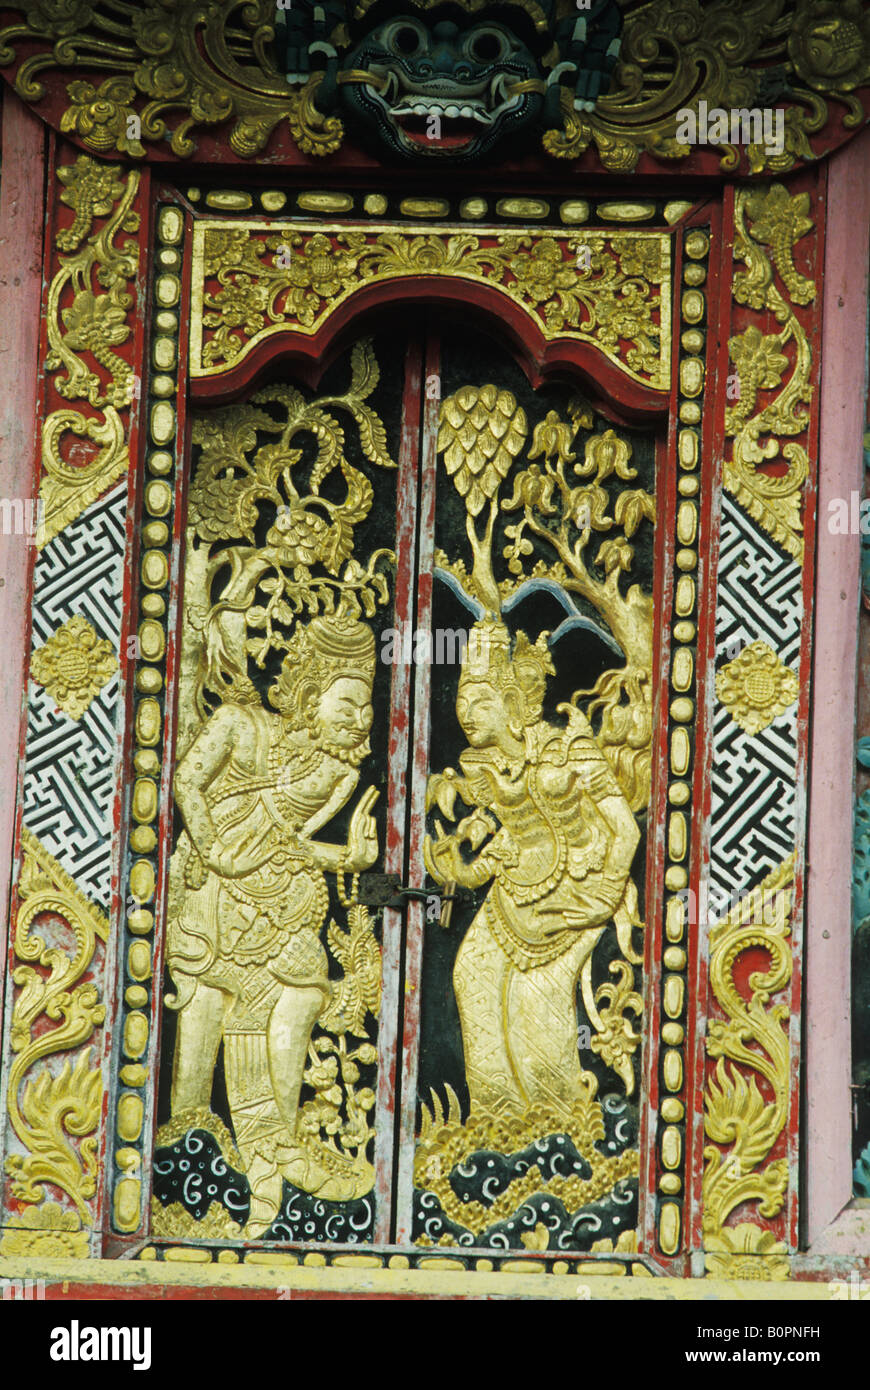 Carved Door In Bali Stock Photos & Carved Door In Bali Stock Images ...